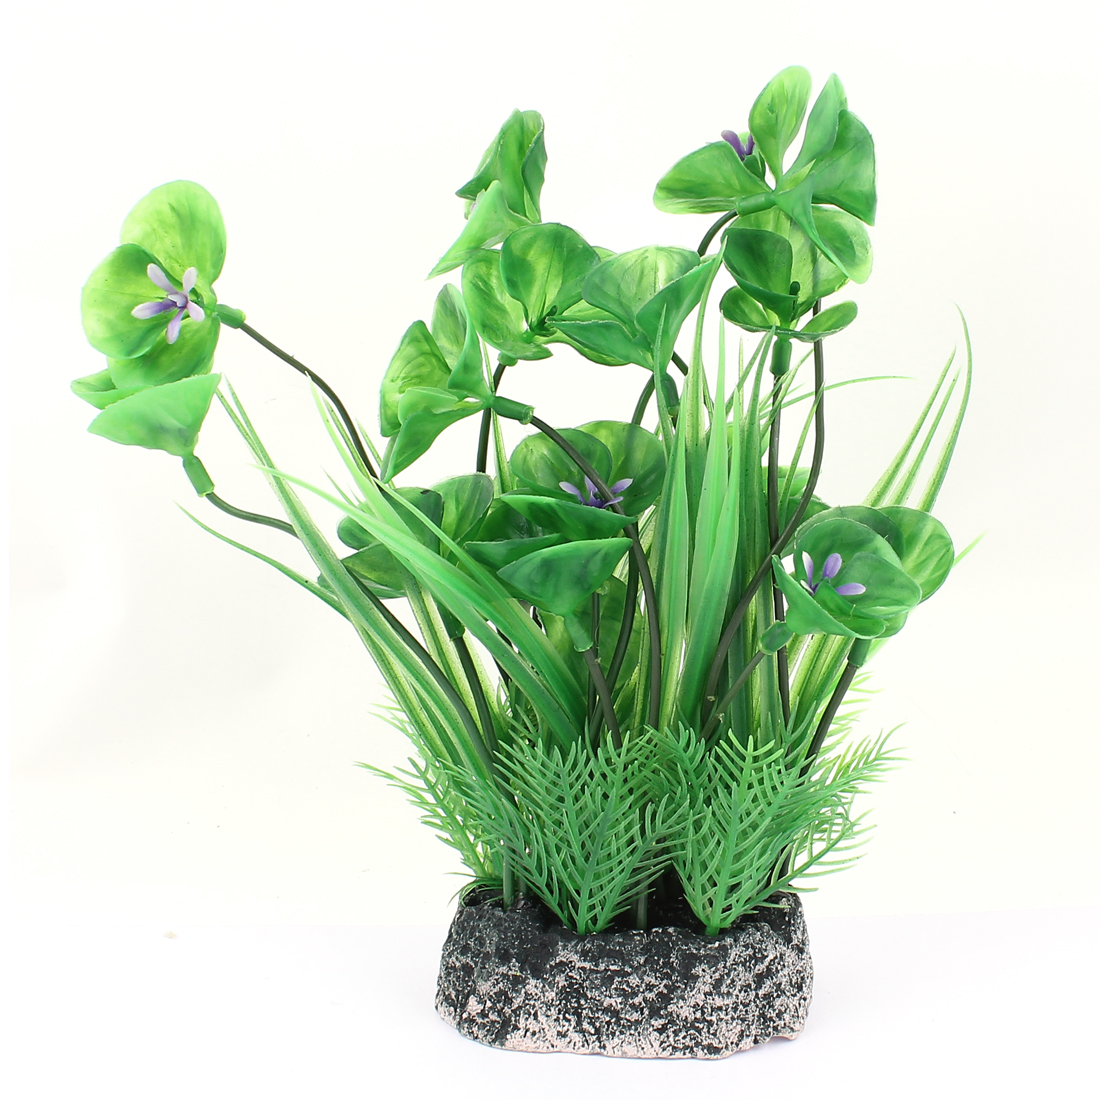 Ceramic Base Underwater Aquatic Plant Fish Tank Aquarium Decor 22cm High